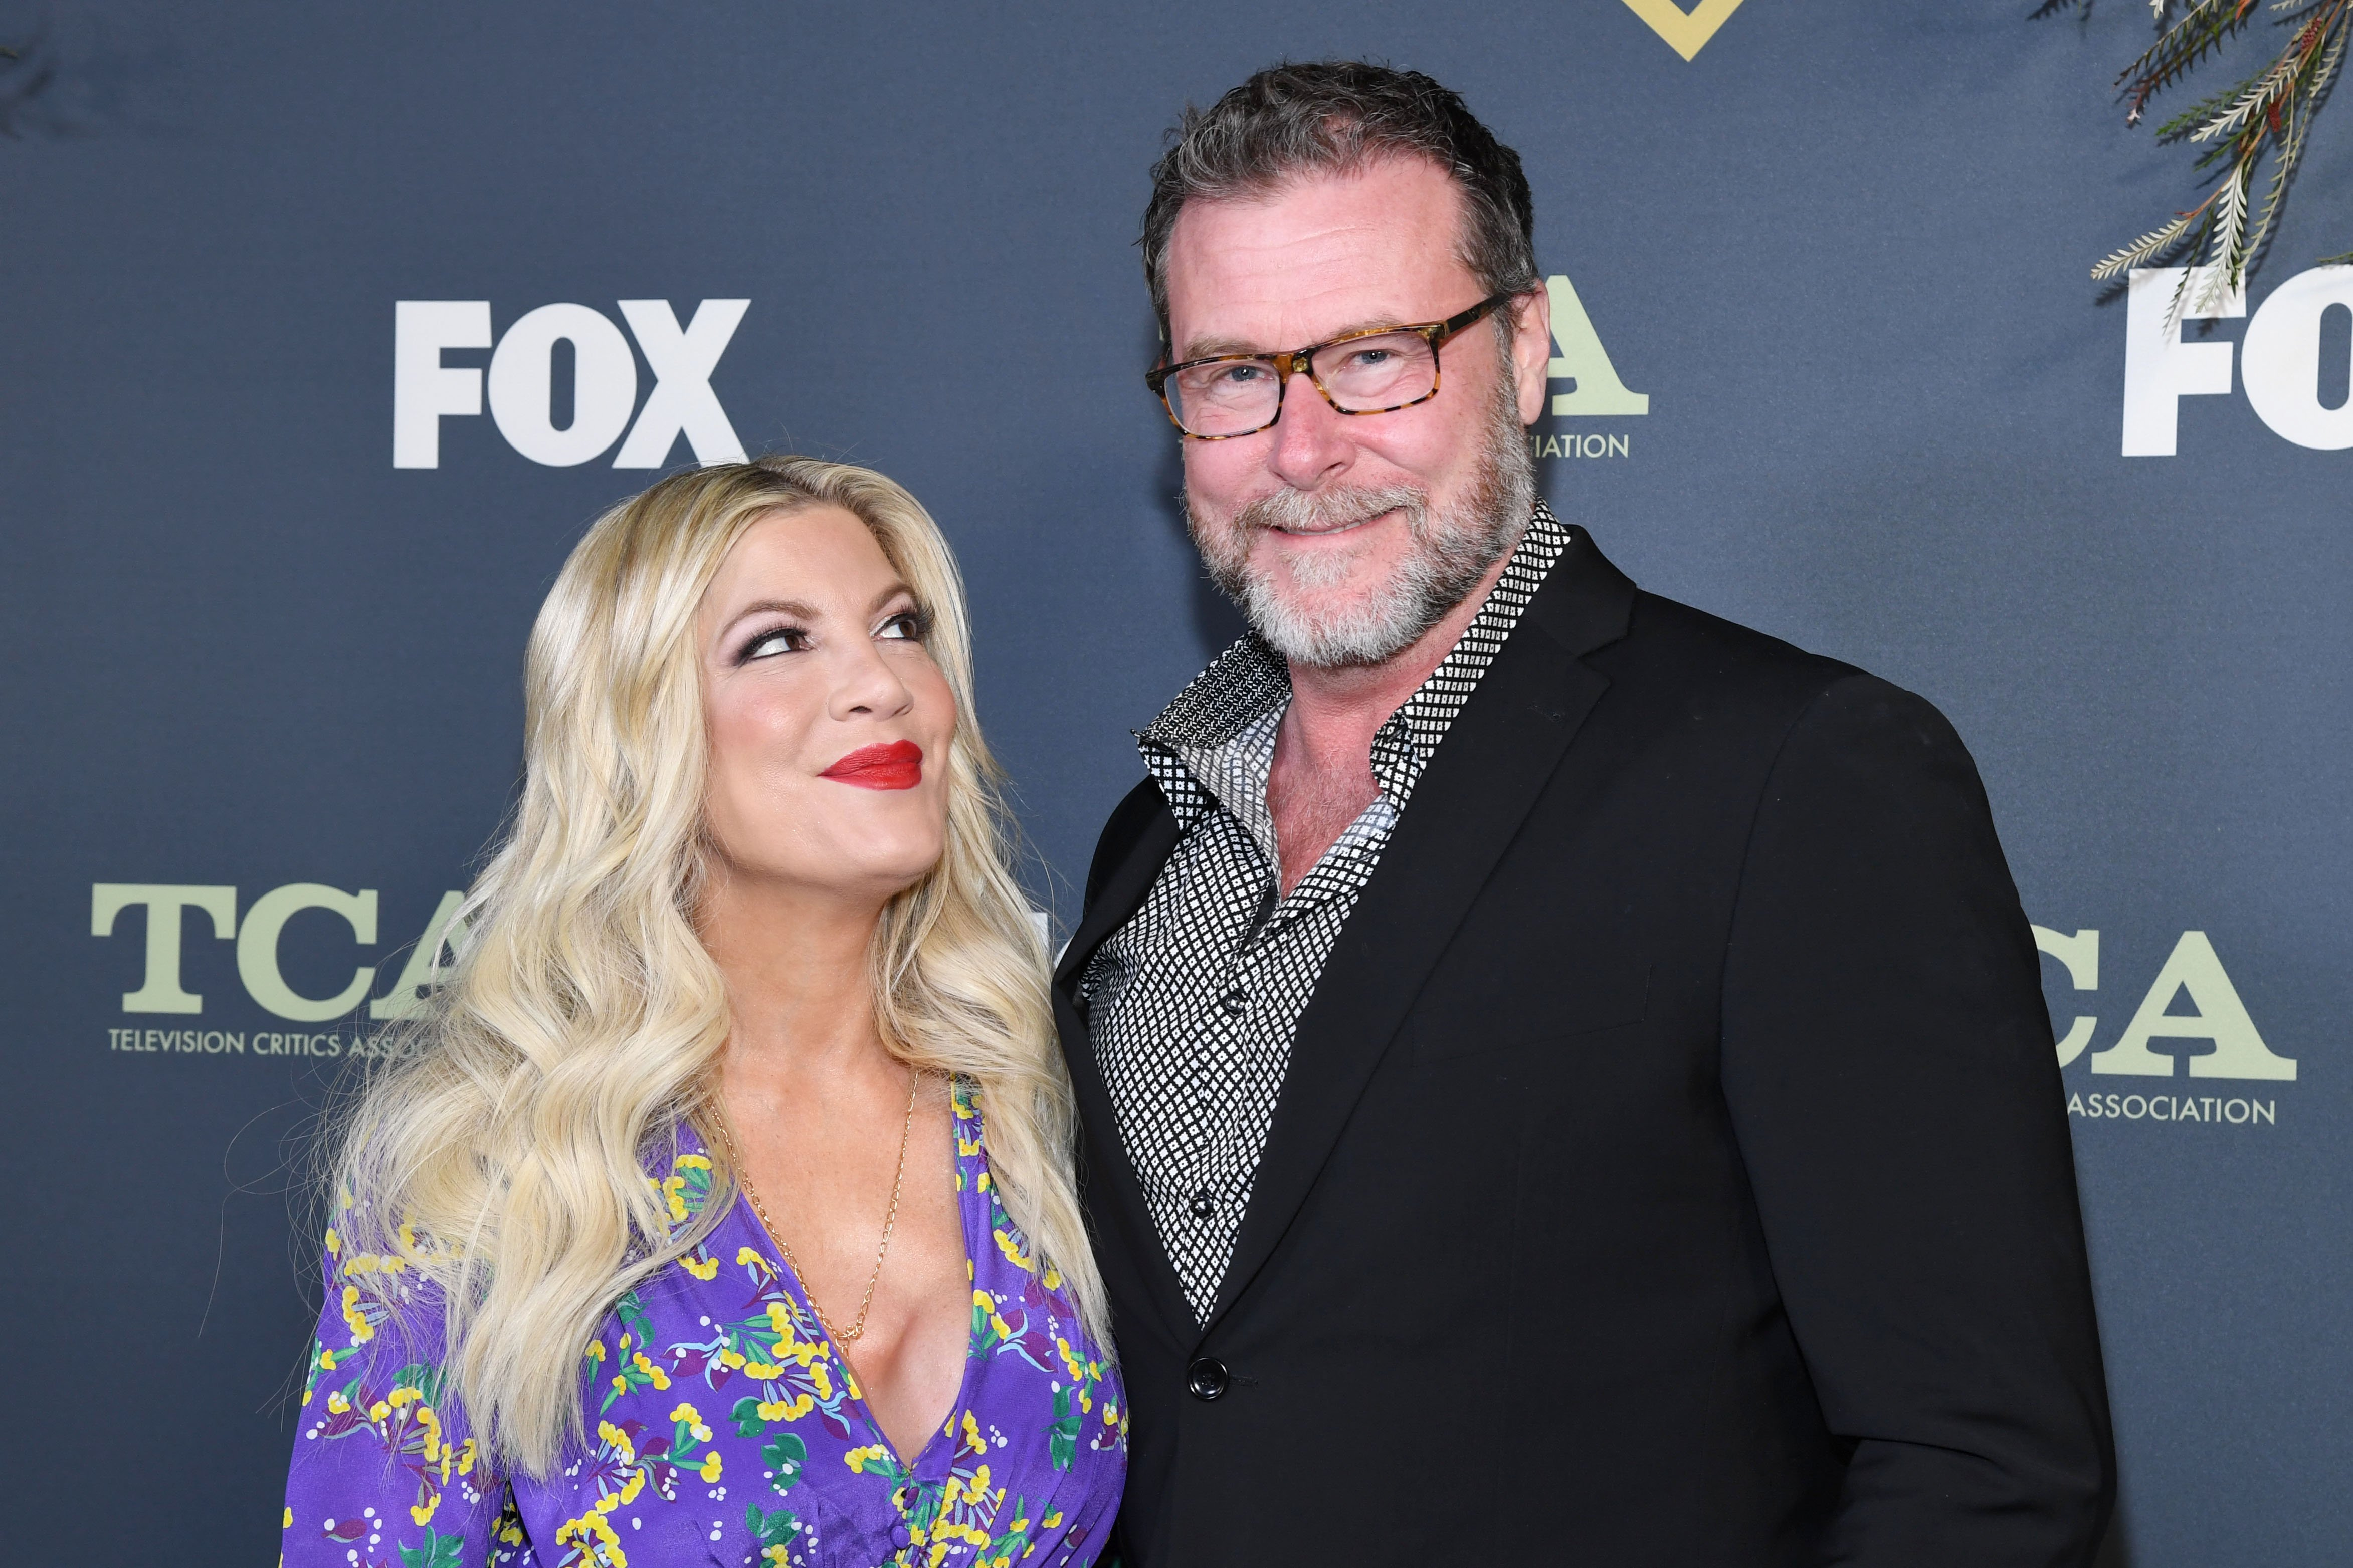 Tori Spelling and Dean McDermott attend Fox Winter TCA at The Fig House on February 06, 2019 | Photo: Getty Images